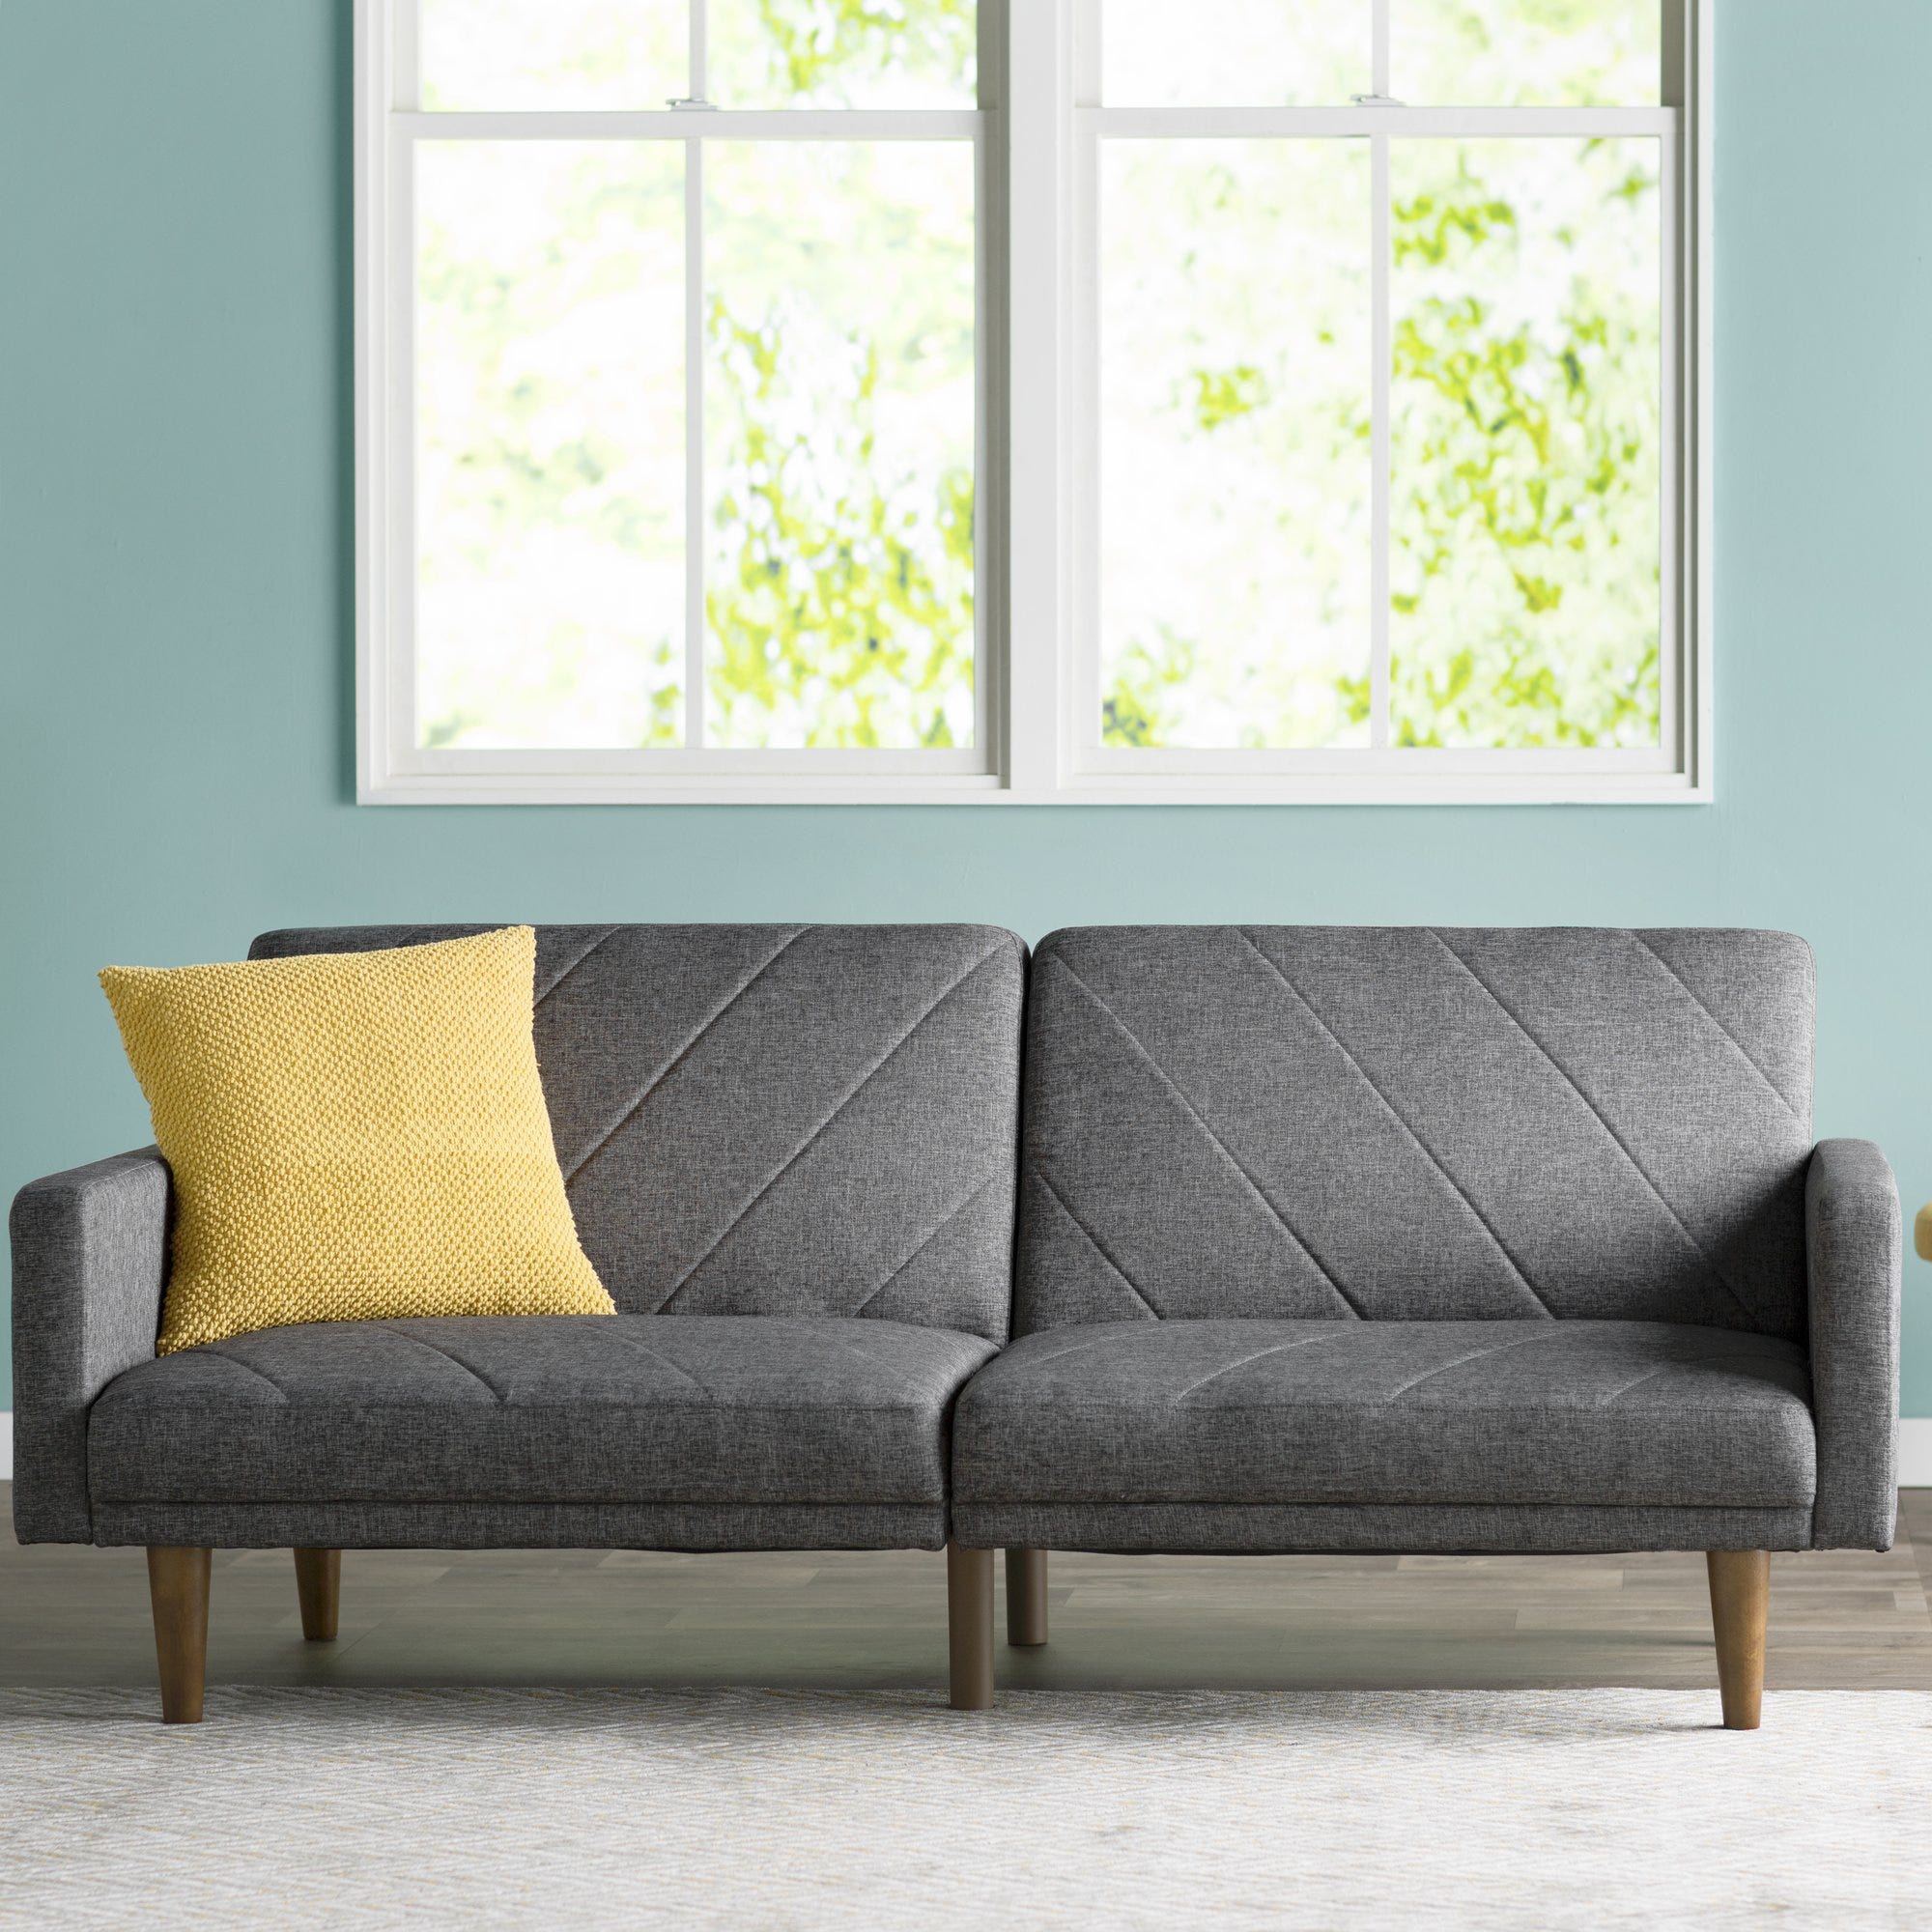 best futon futons reviews your and home brighten for chaise lounges with black red will mattress white less